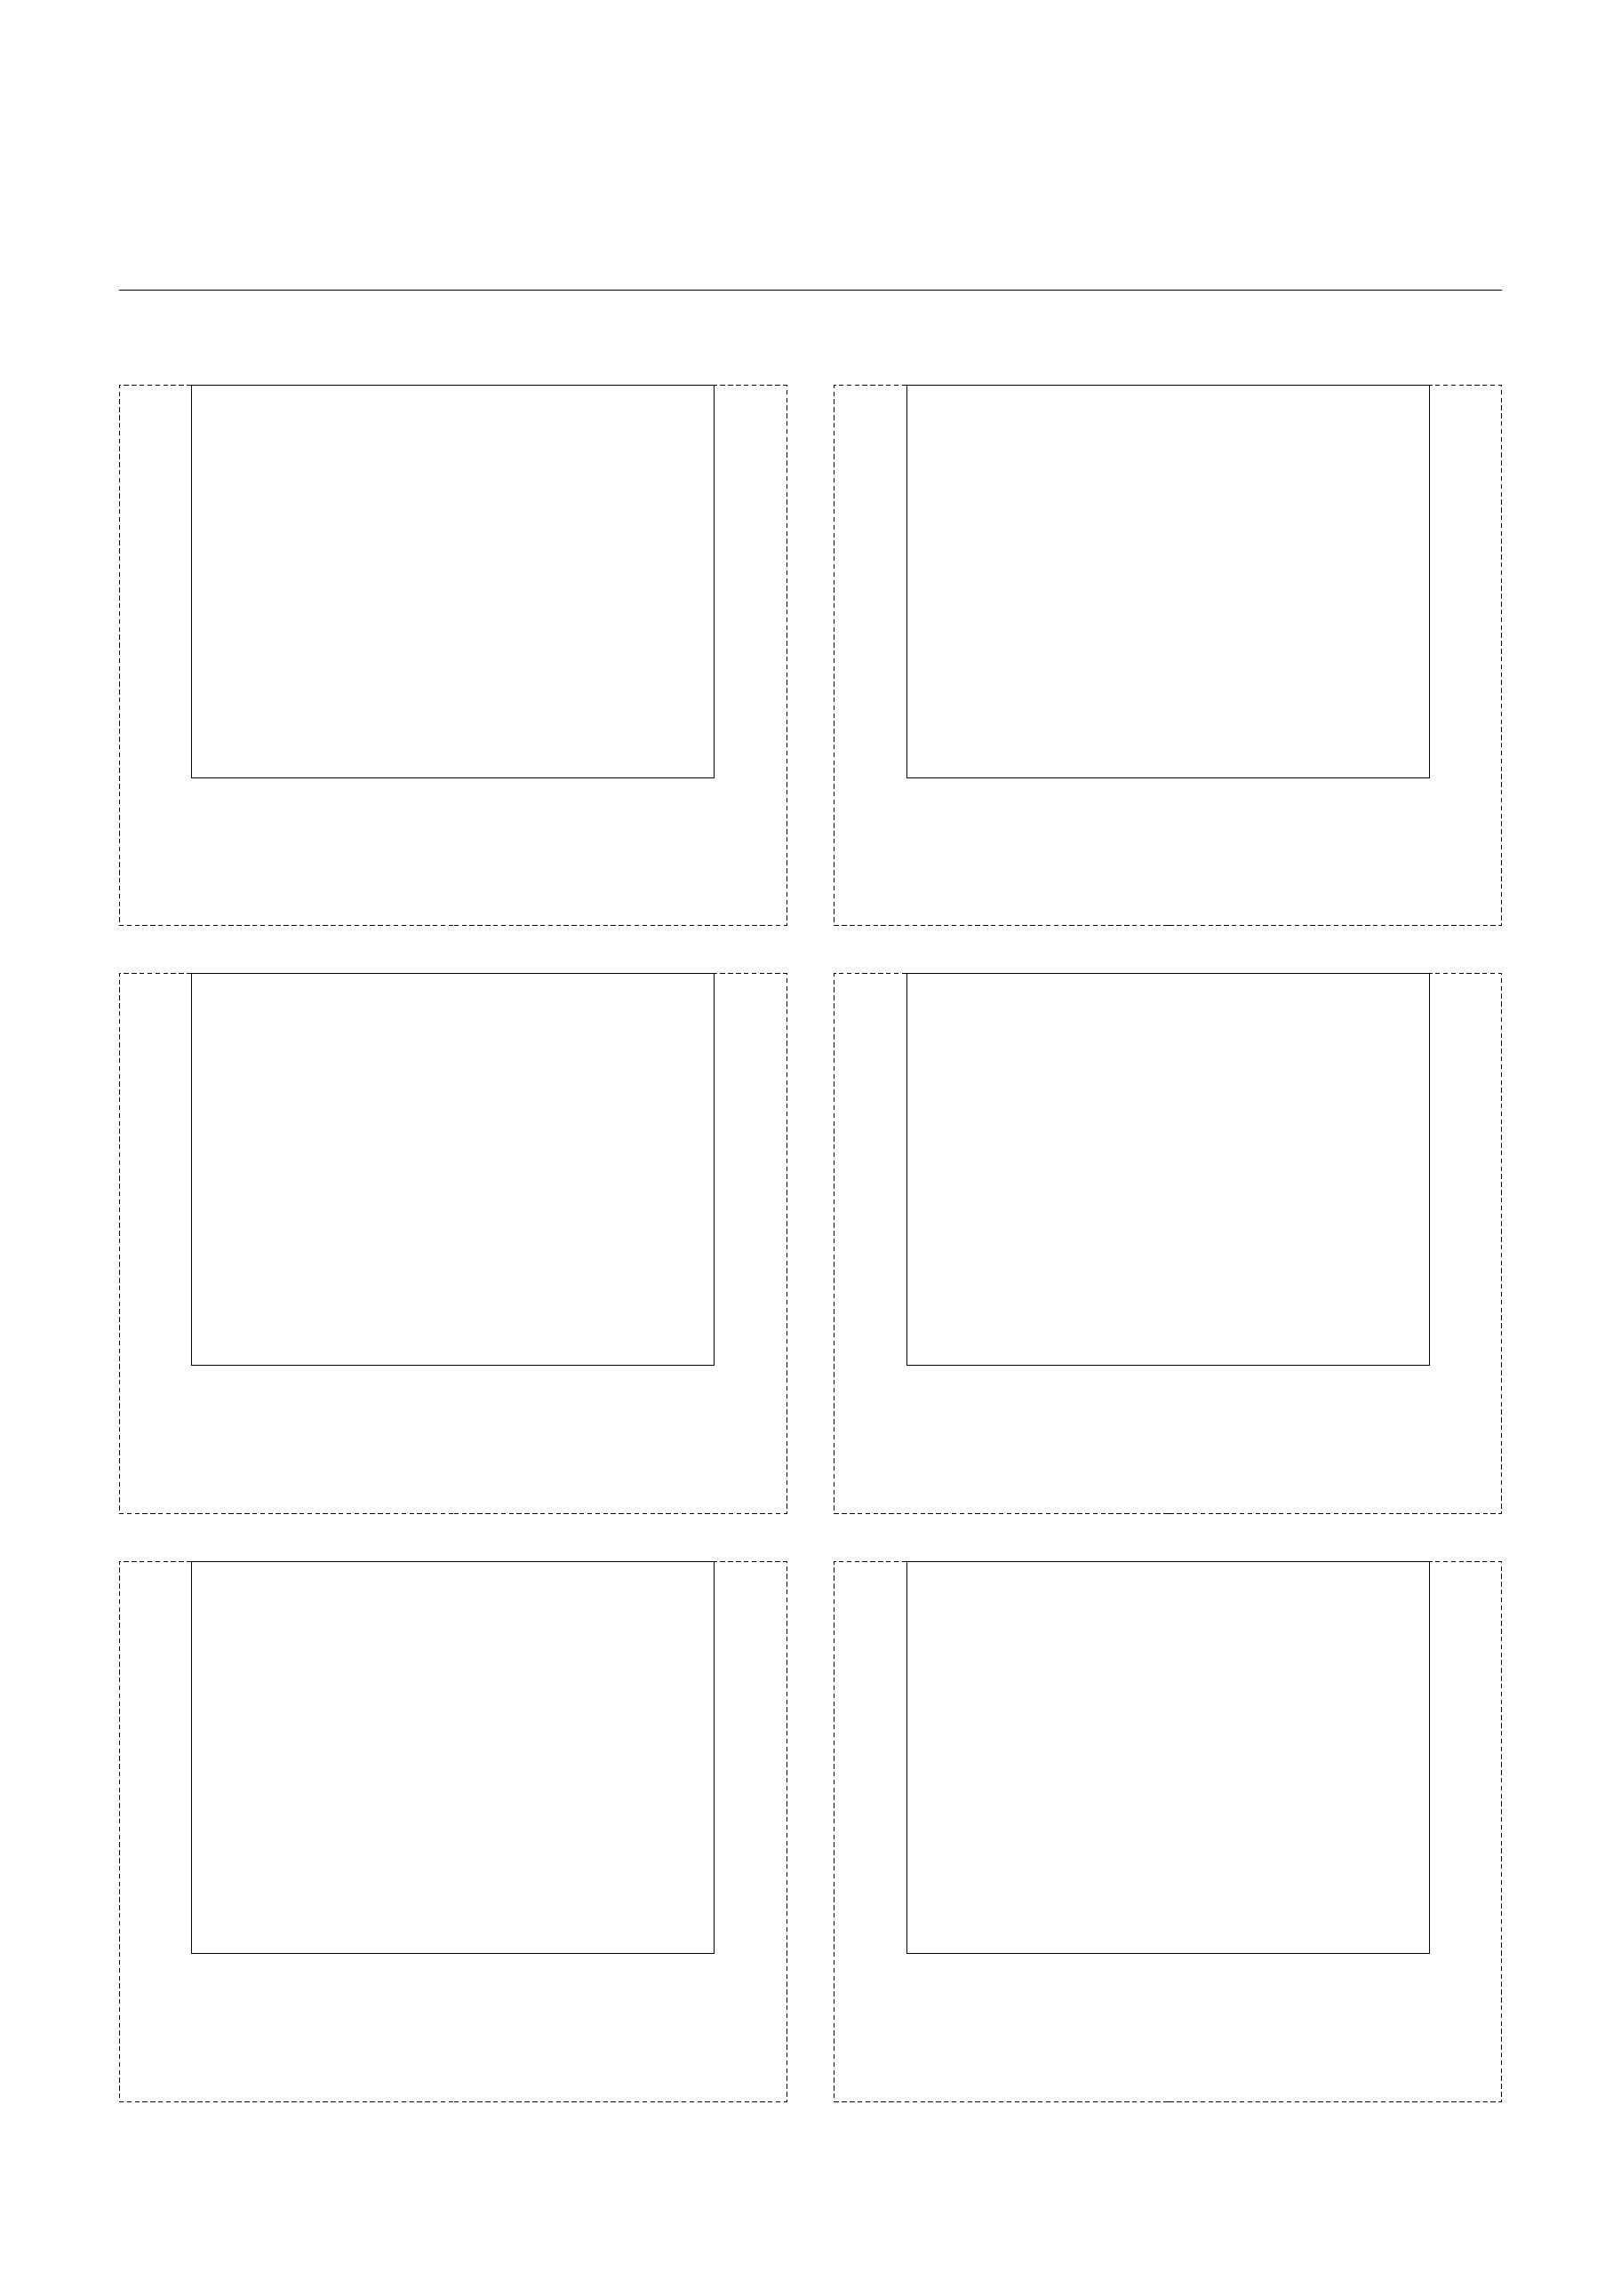 storyboard with 2x3 grid of 4 3  full screen  screens on